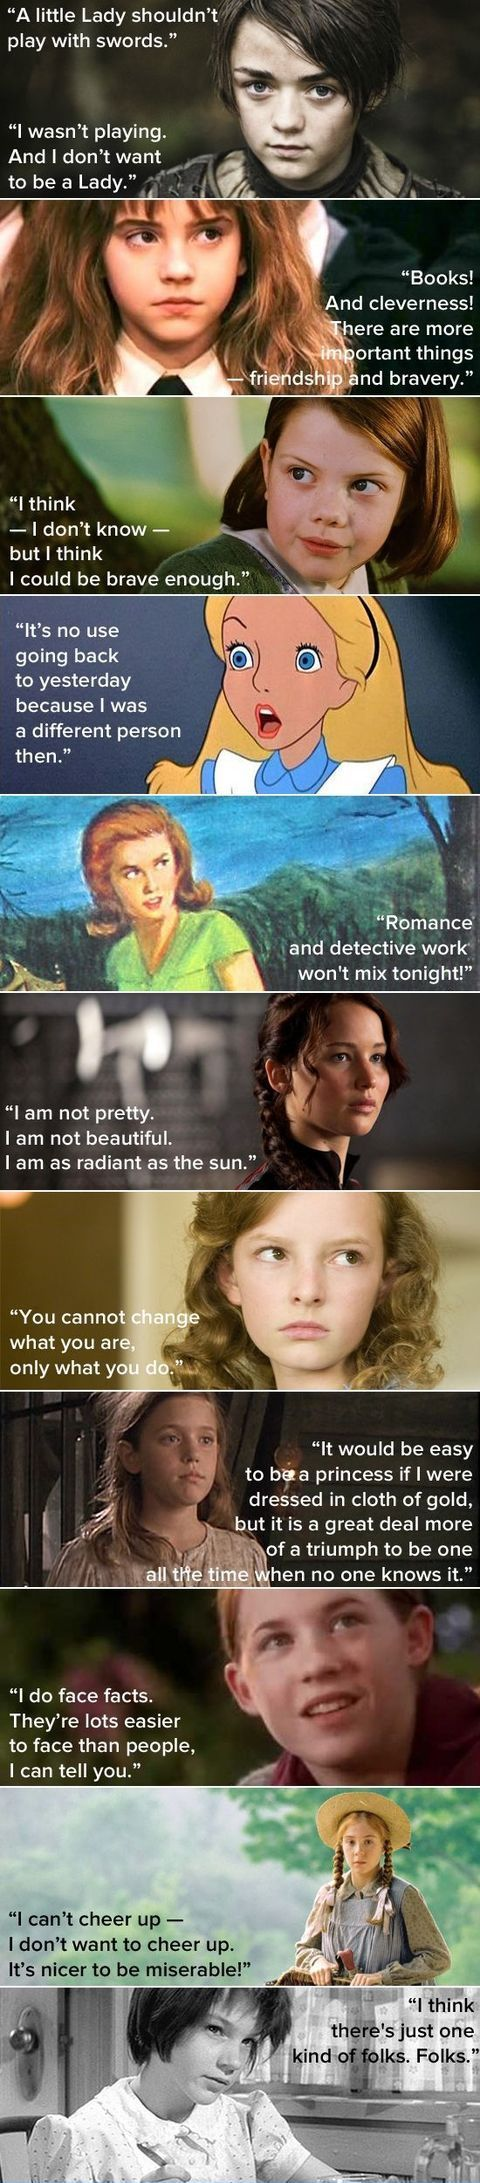 "Inspirational Lady Book Characters .1- Arya Stark 2- Hermione Granger 3- Lucy Pevensie 4- Alice 5- Nancy Drew 6- Katniss Everdeen 7- Lyra Belacqua from The Golden Compass 8- Sara Crewe from A Little Princess 9- Meg Murry from A Wrinkle in Time 10- Anne Shirley from Anne of Green Gables 11- Jean Louise ""Scout"" Finch from To Kill a Mockingbird"